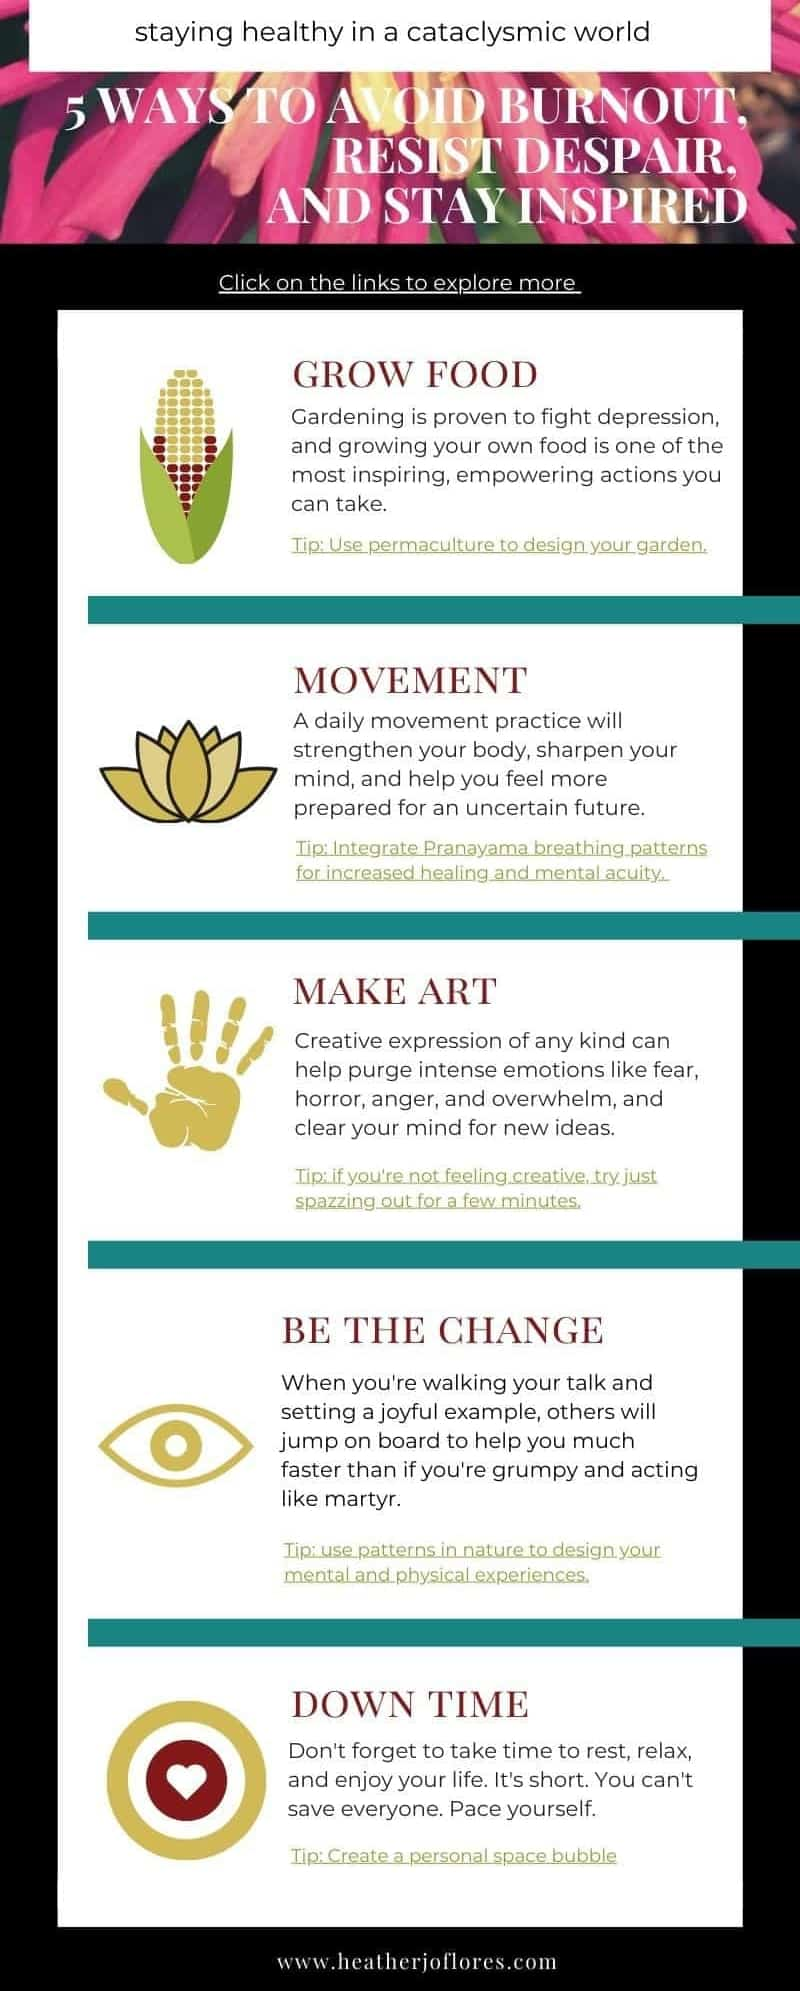 How-to-Avoid-Burnout infographic by Heather Jo Flores